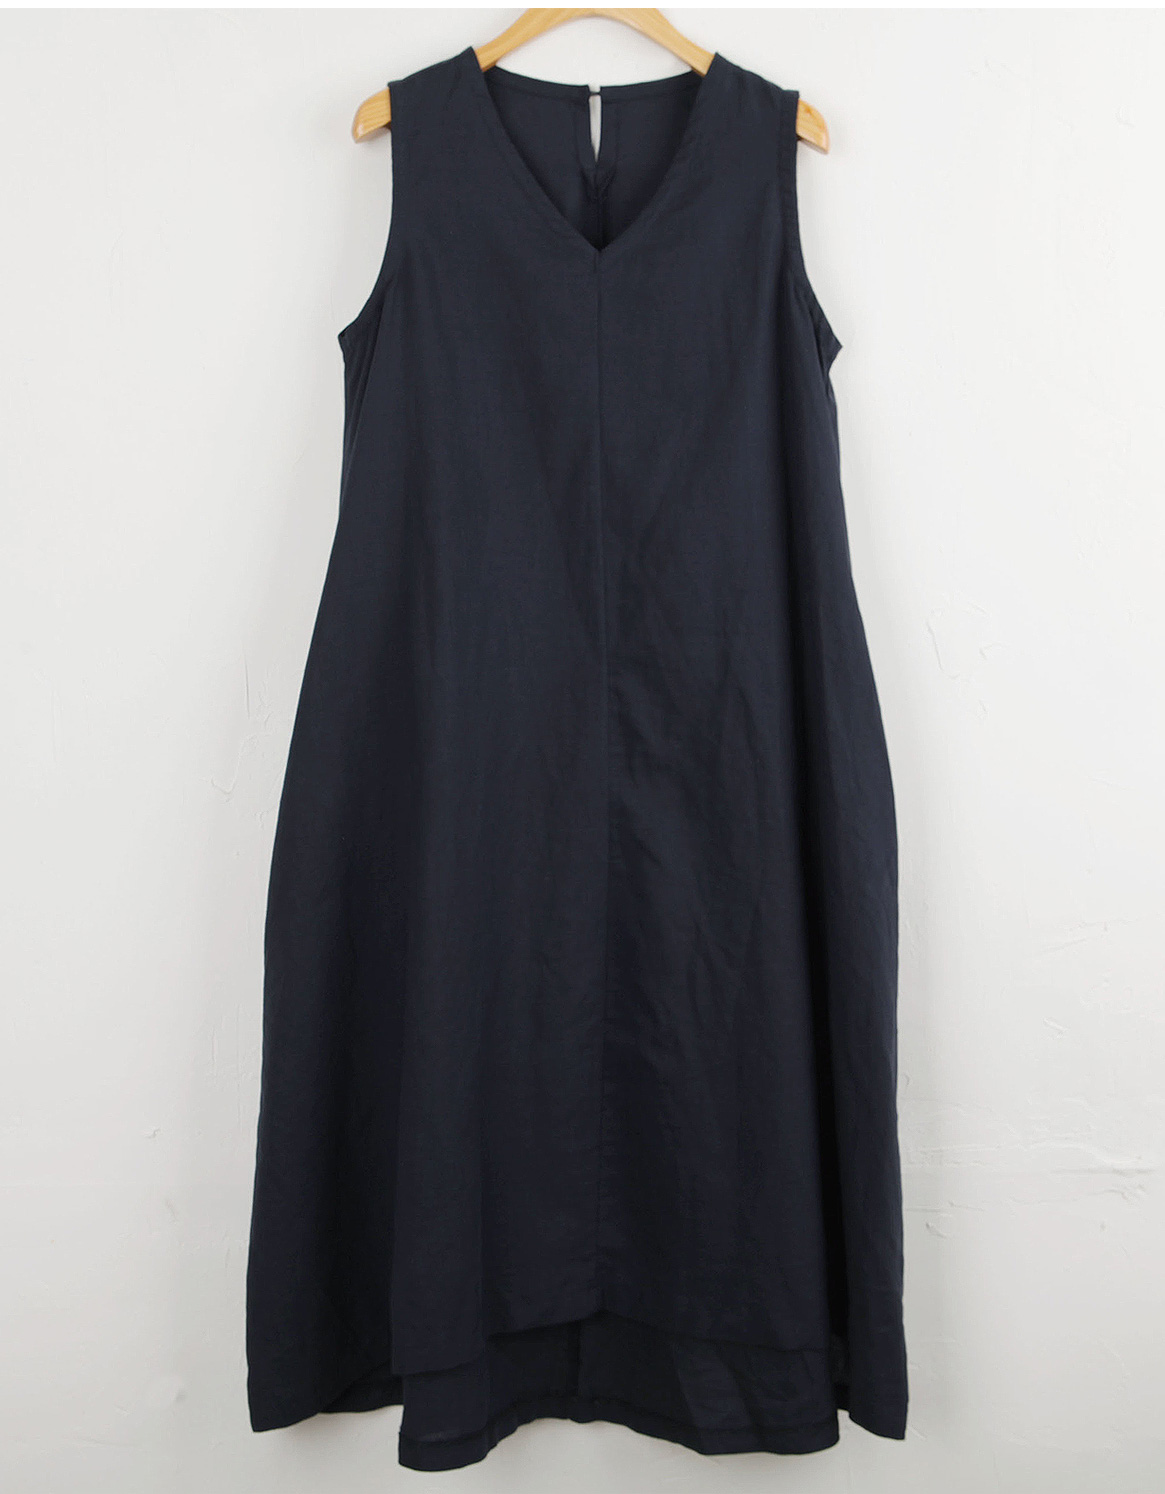 Perfect size! V linen dress